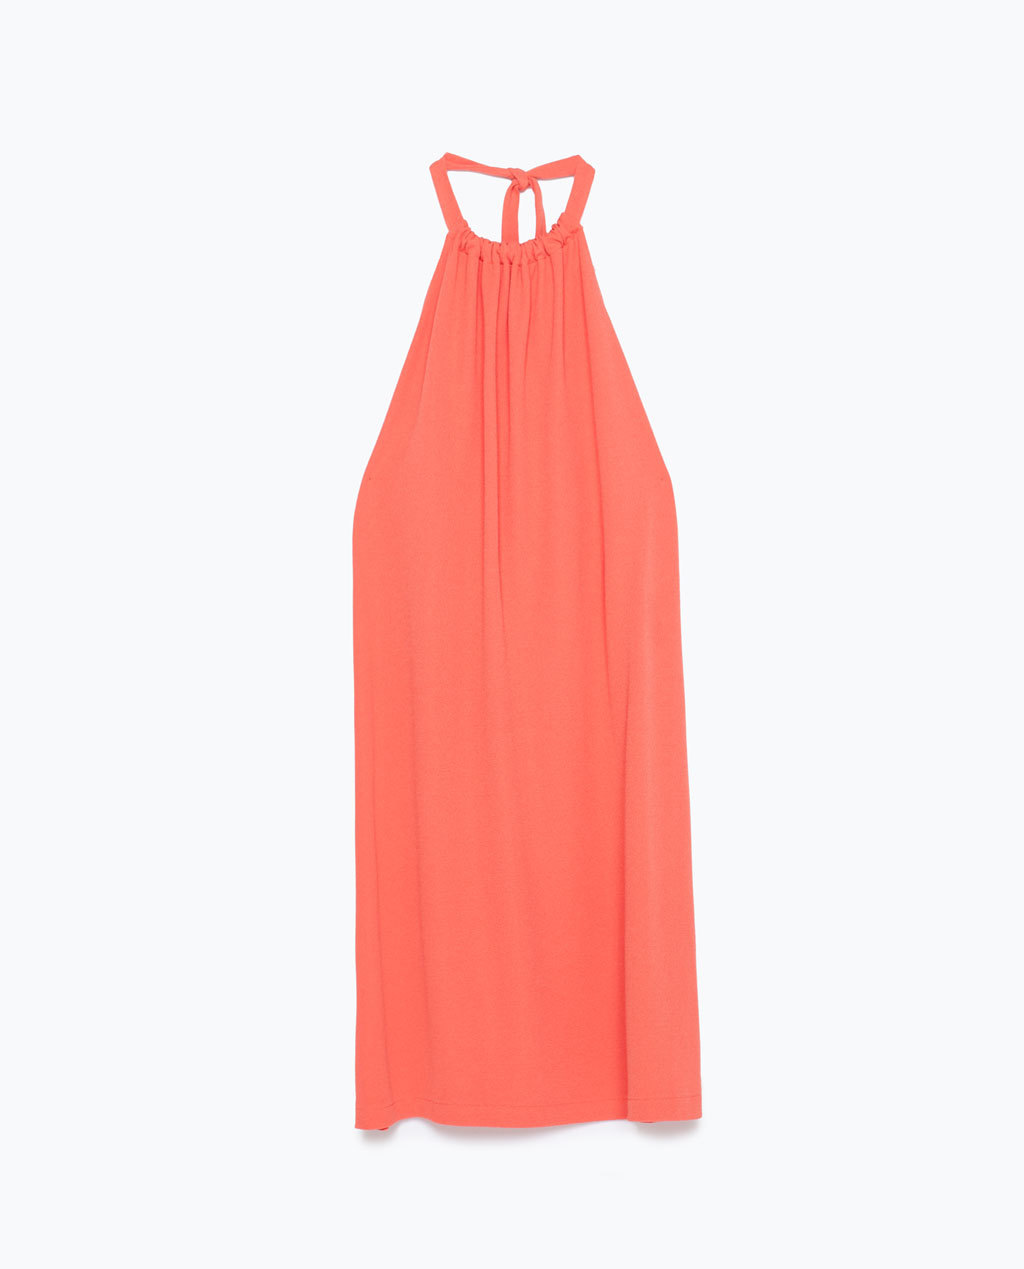 Halterneck Dress - style: shift; length: mid thigh; pattern: plain; sleeve style: sleeveless; neckline: low halter neck; back detail: back revealing; predominant colour: coral; occasions: casual, evening, holiday; fit: straight cut; fibres: polyester/polyamide - 100%; hip detail: subtle/flattering hip detail; sleeve length: sleeveless; pattern type: fabric; texture group: jersey - stretchy/drapey; season: s/s 2015; wardrobe: highlight